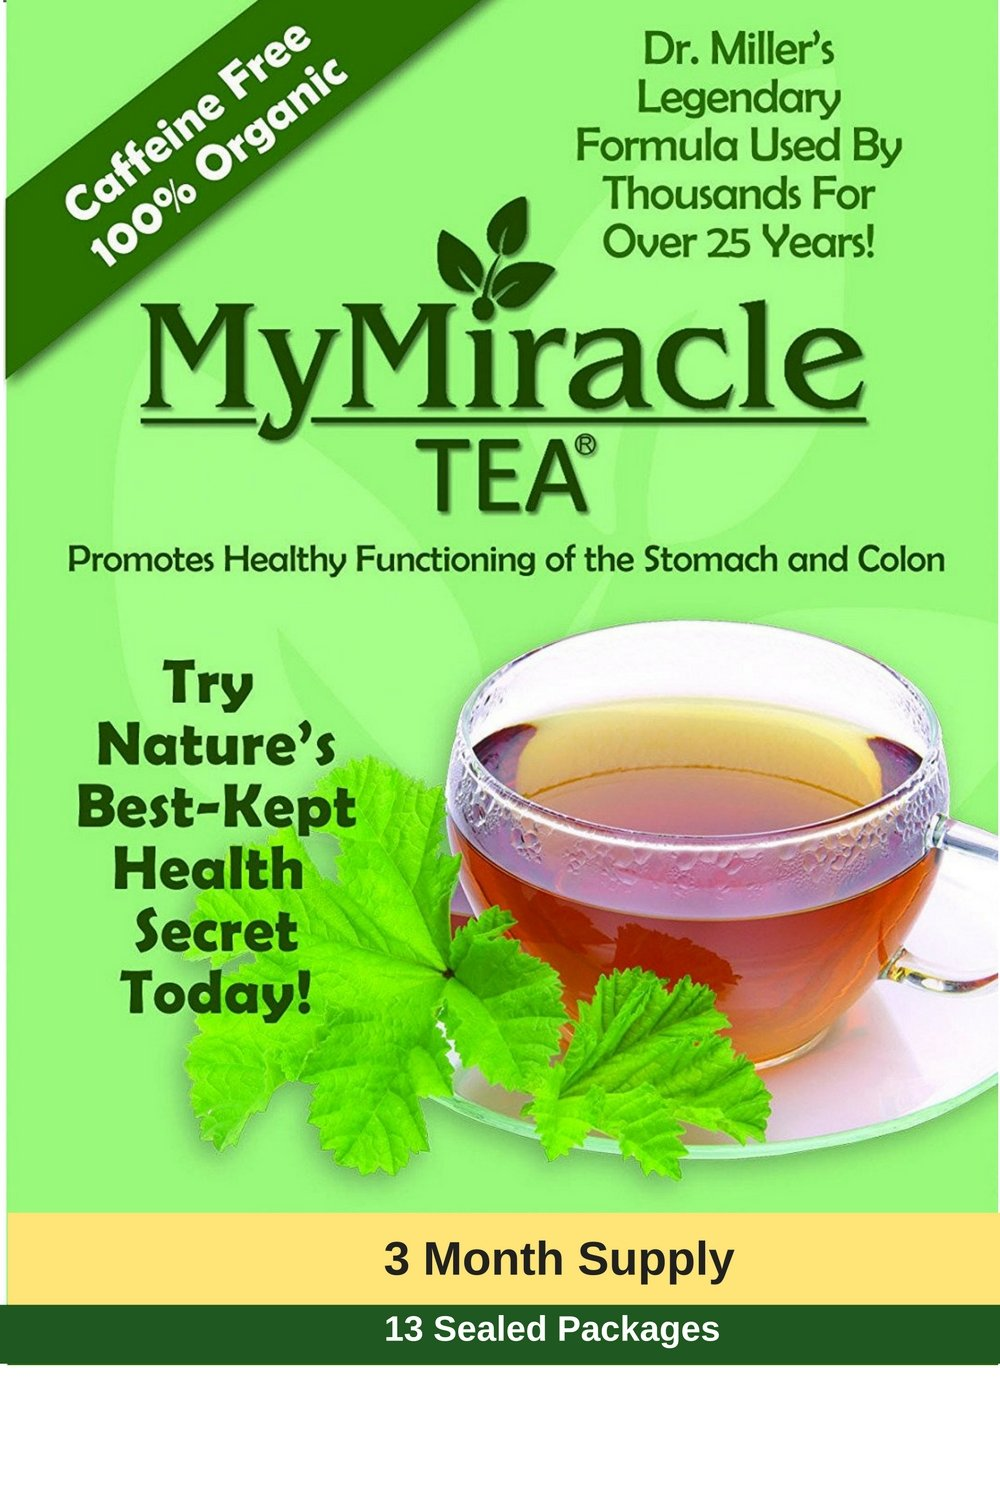 Dr. Miller's Holy Tea   My Miracle Tea Constipation Relief and Detox (3 Month Tea - Save $10 Discount)